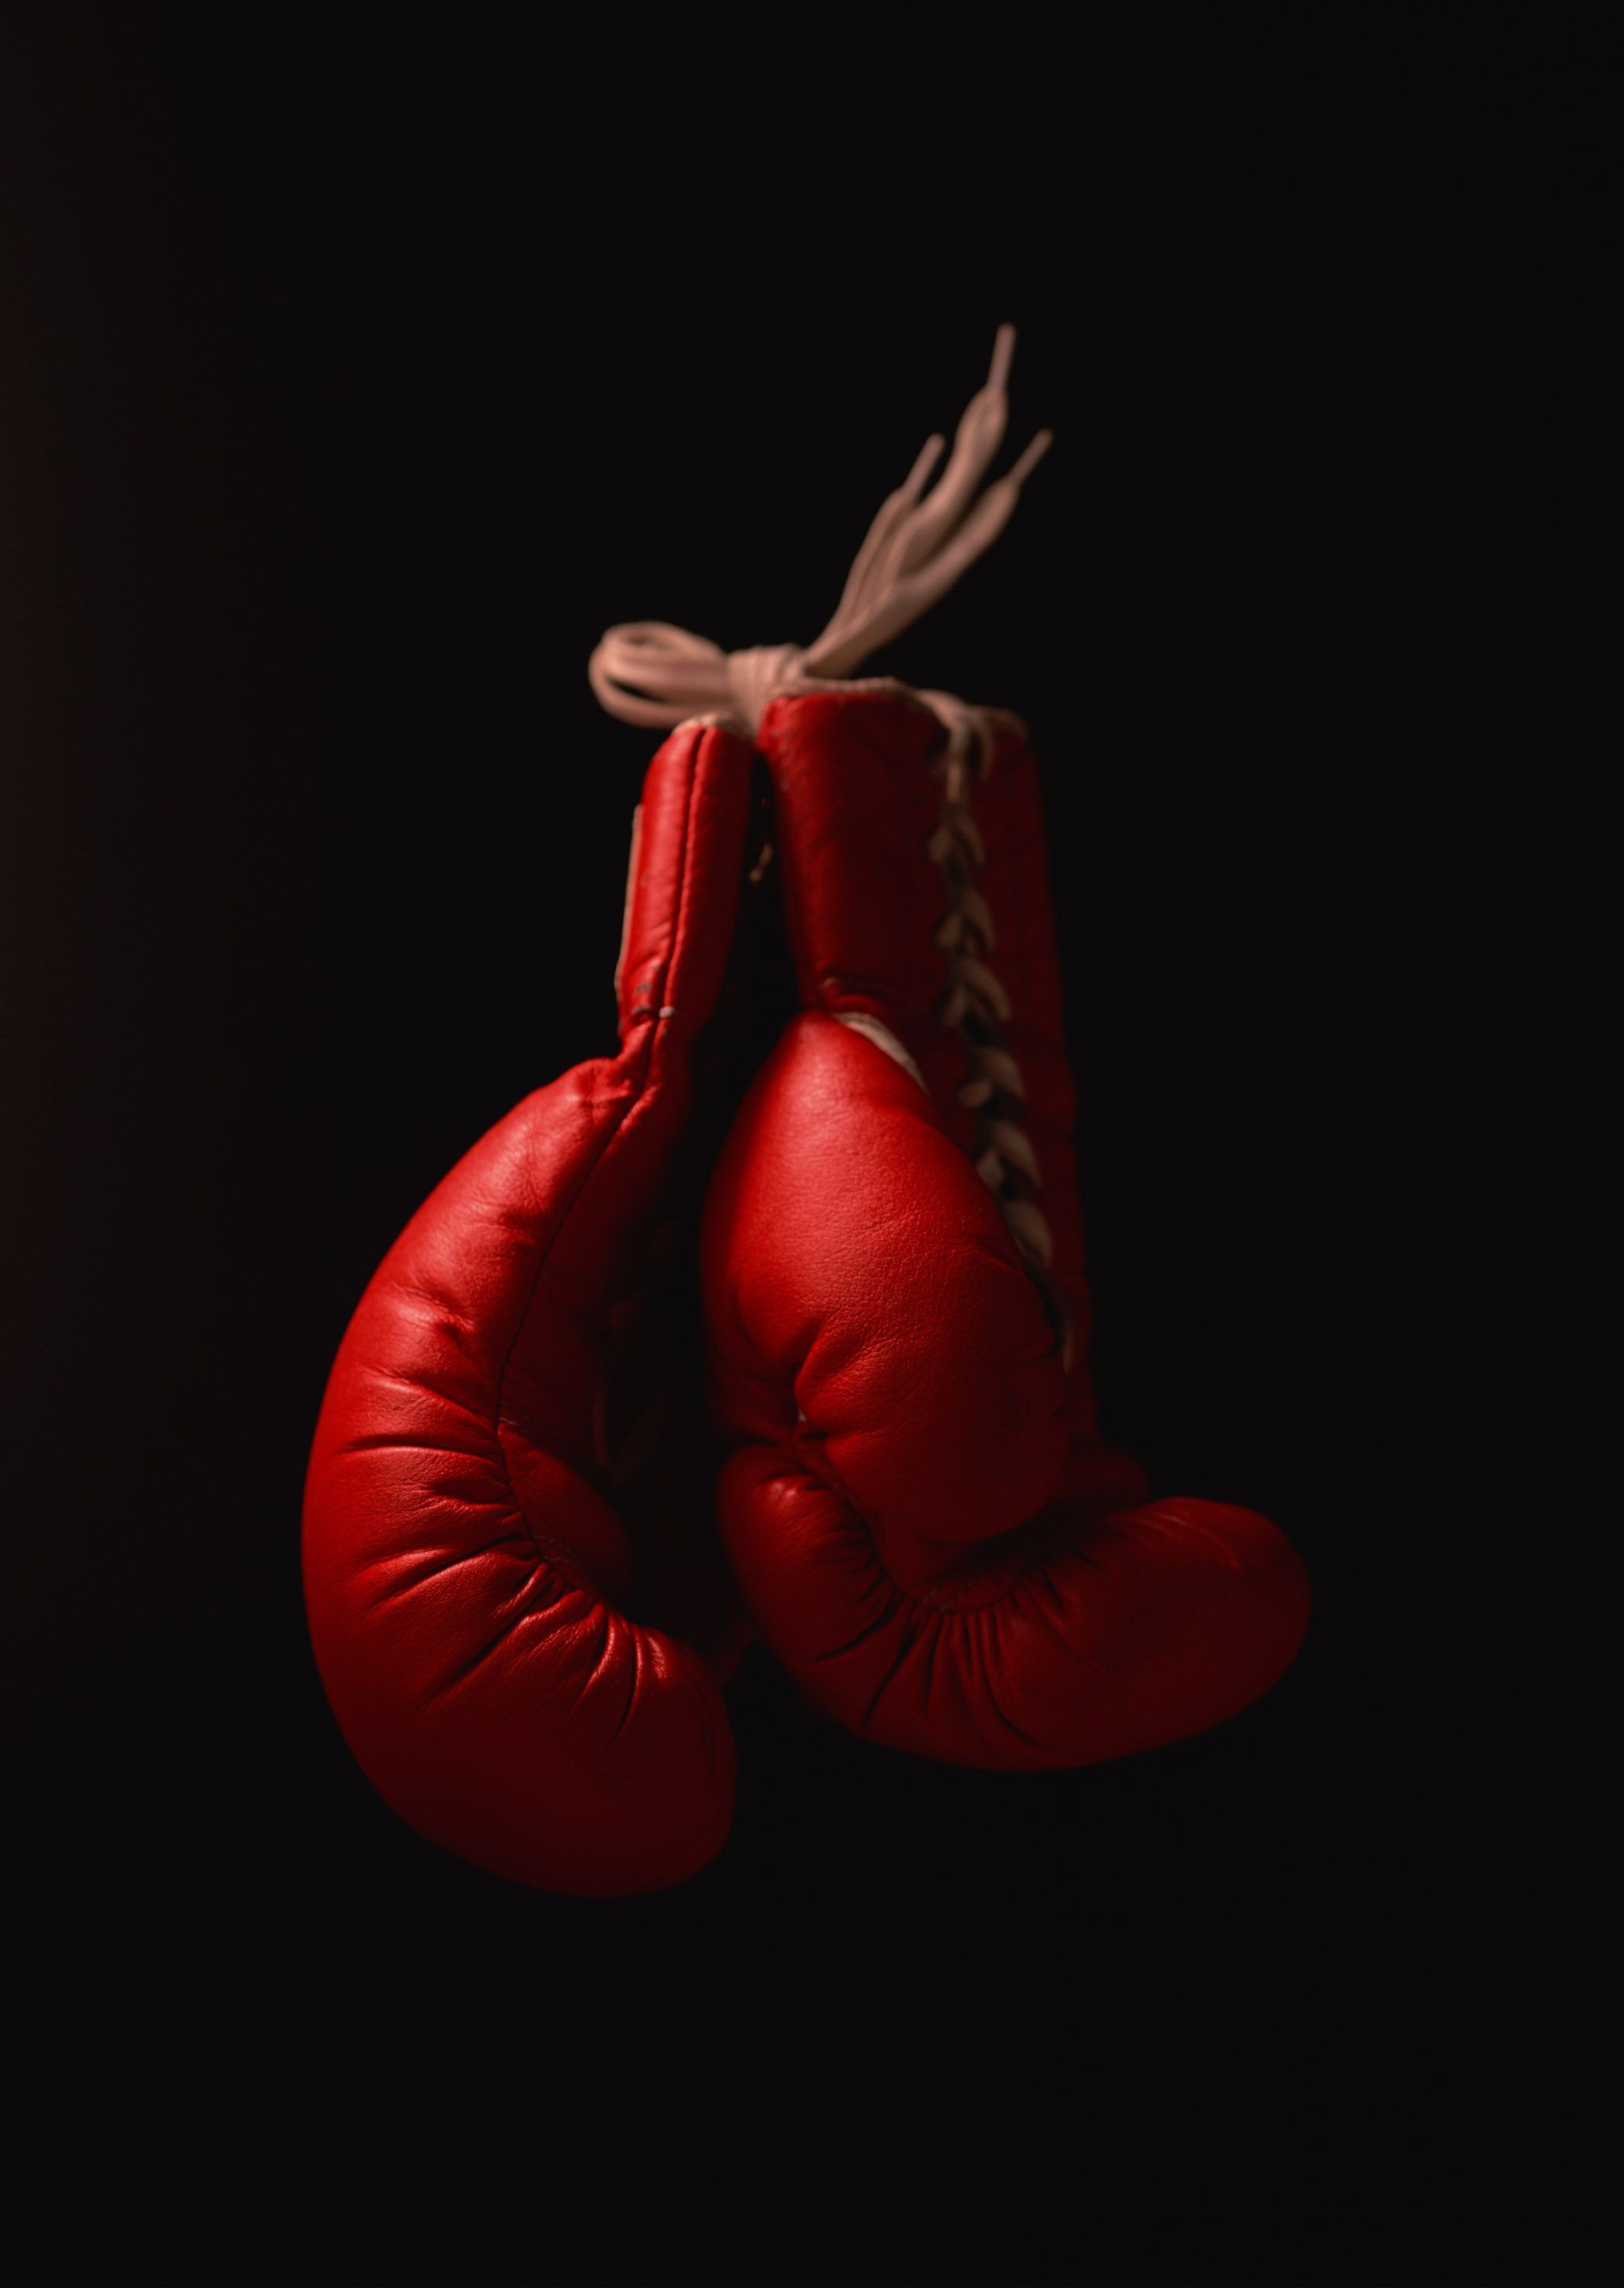 Boxing Gloves Wallpapers Wallpaper Cave Wallpaper For Iphone 4 Boxing Gloves Iphone Wallpaper